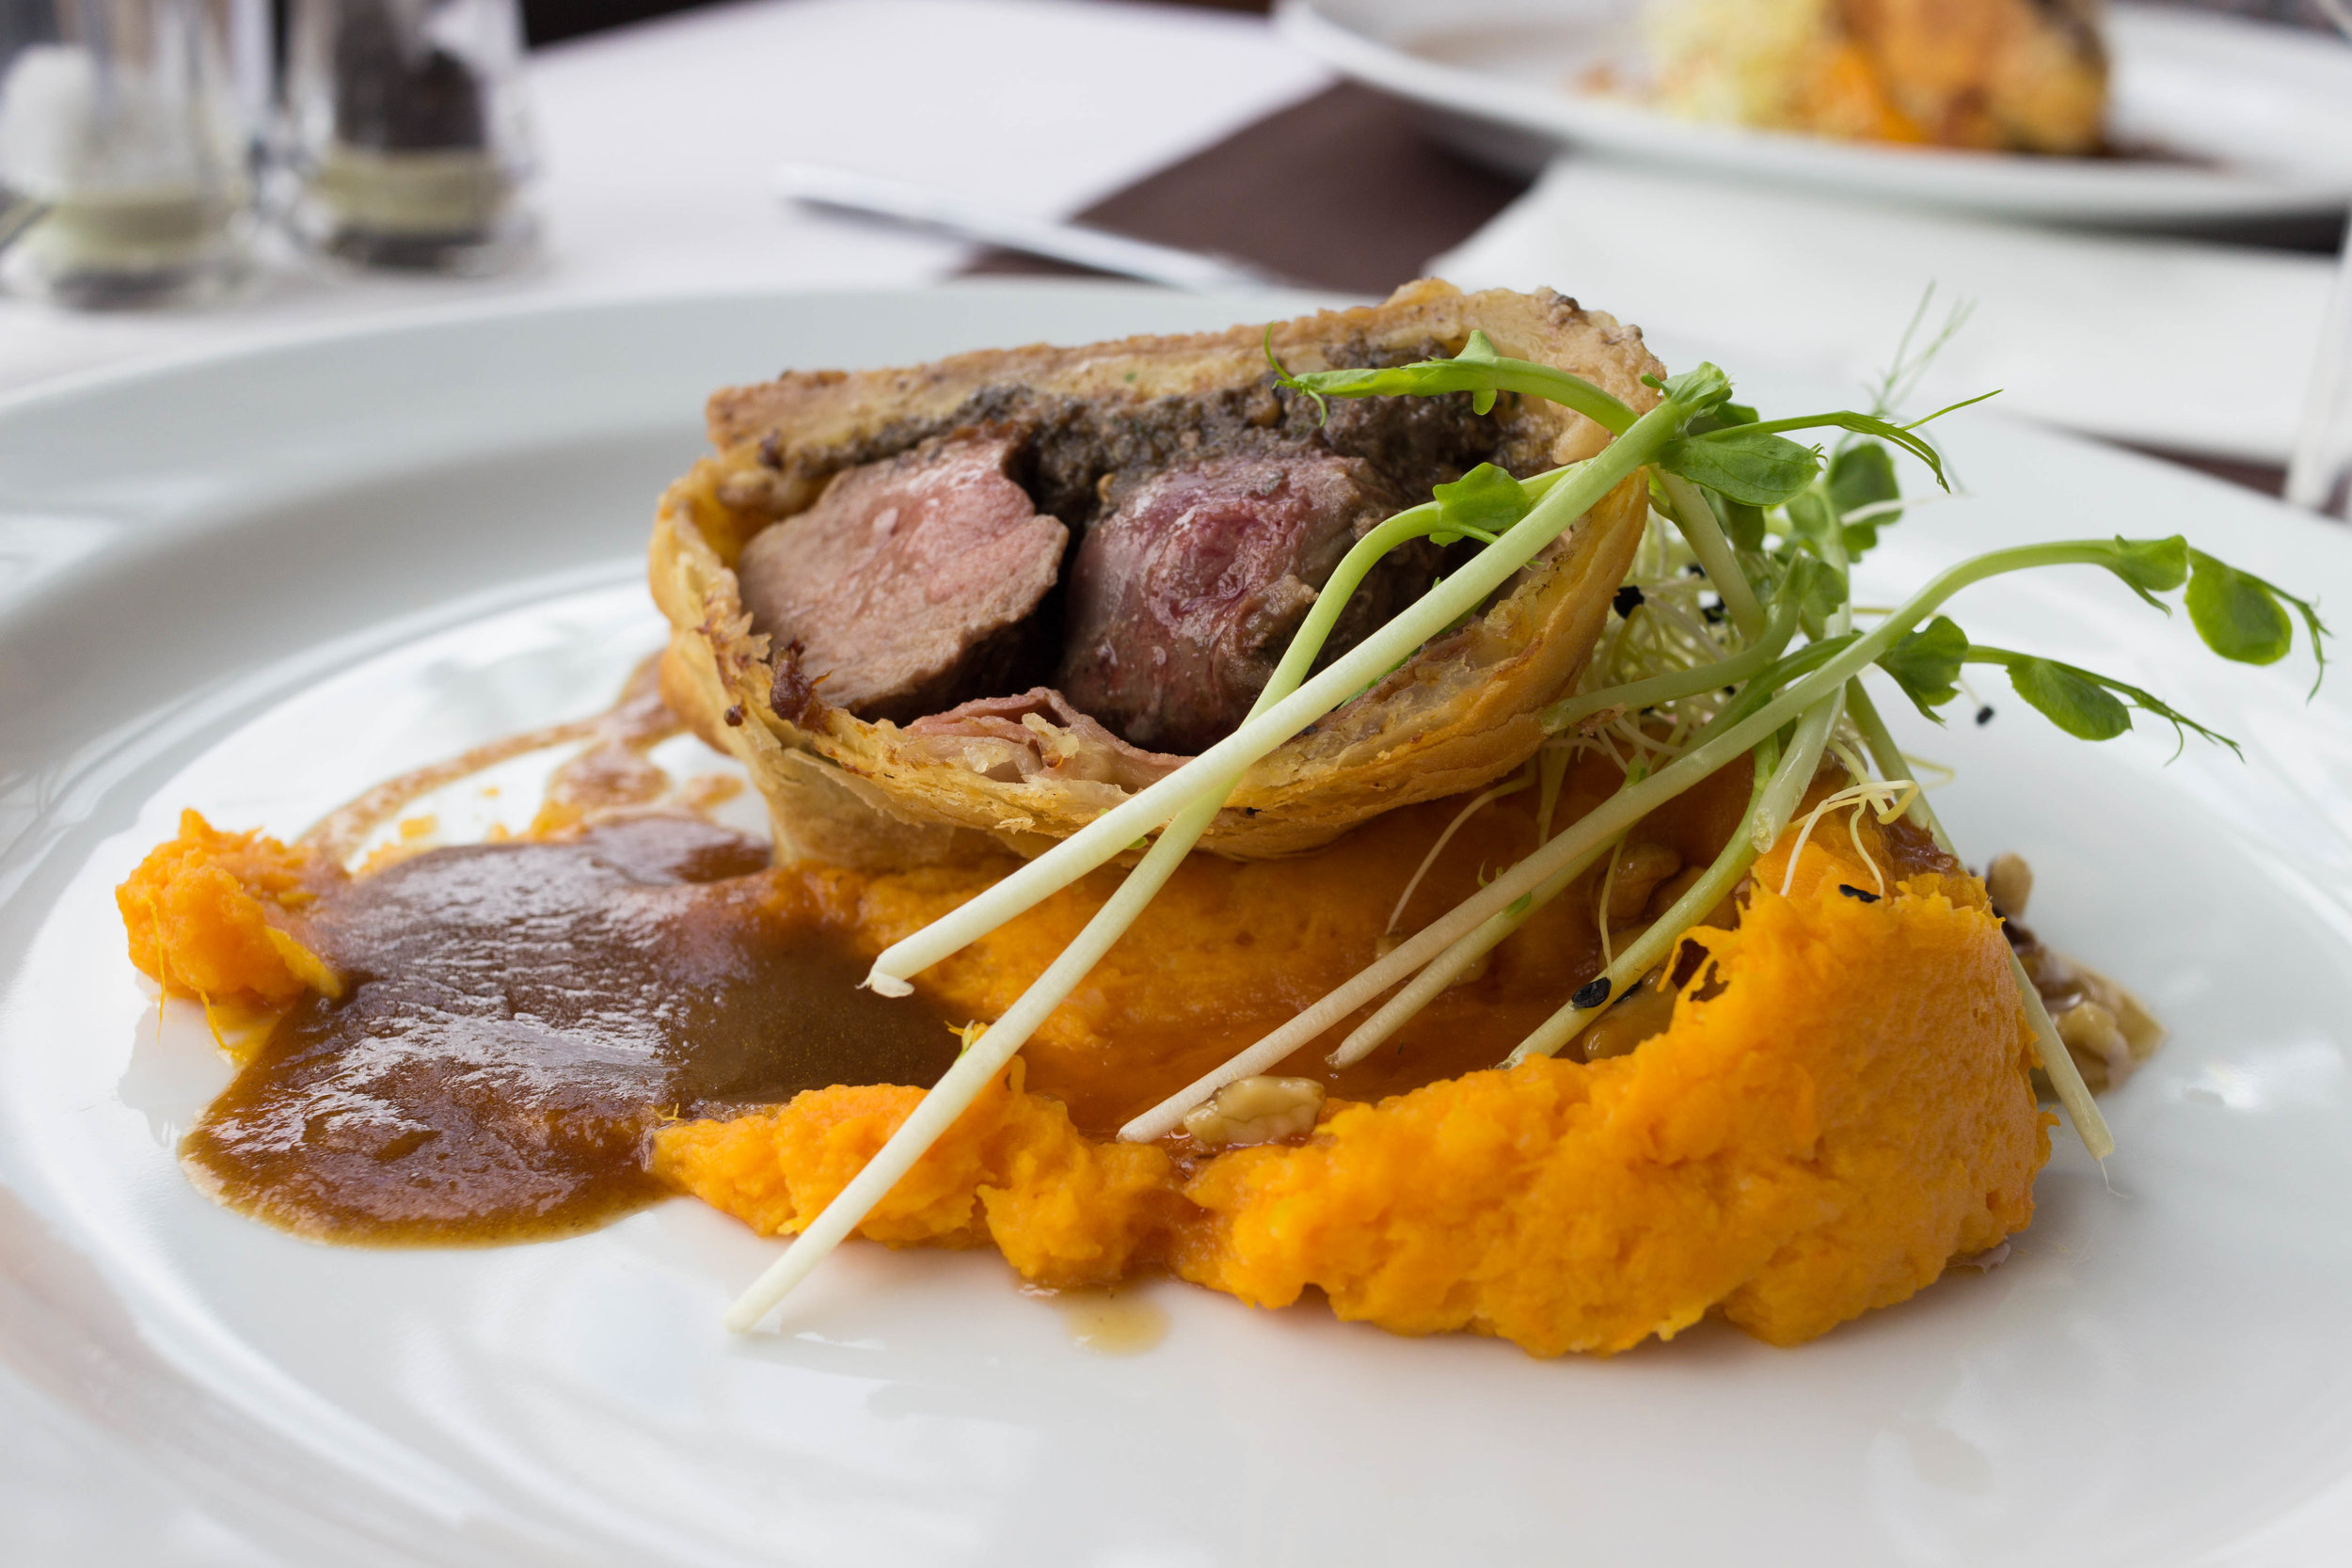 Wellington deer loin, stuffed mushrooms with herbs, wrapped in dry cured ham, sweet potatoes with walnut syrup and wine sauce